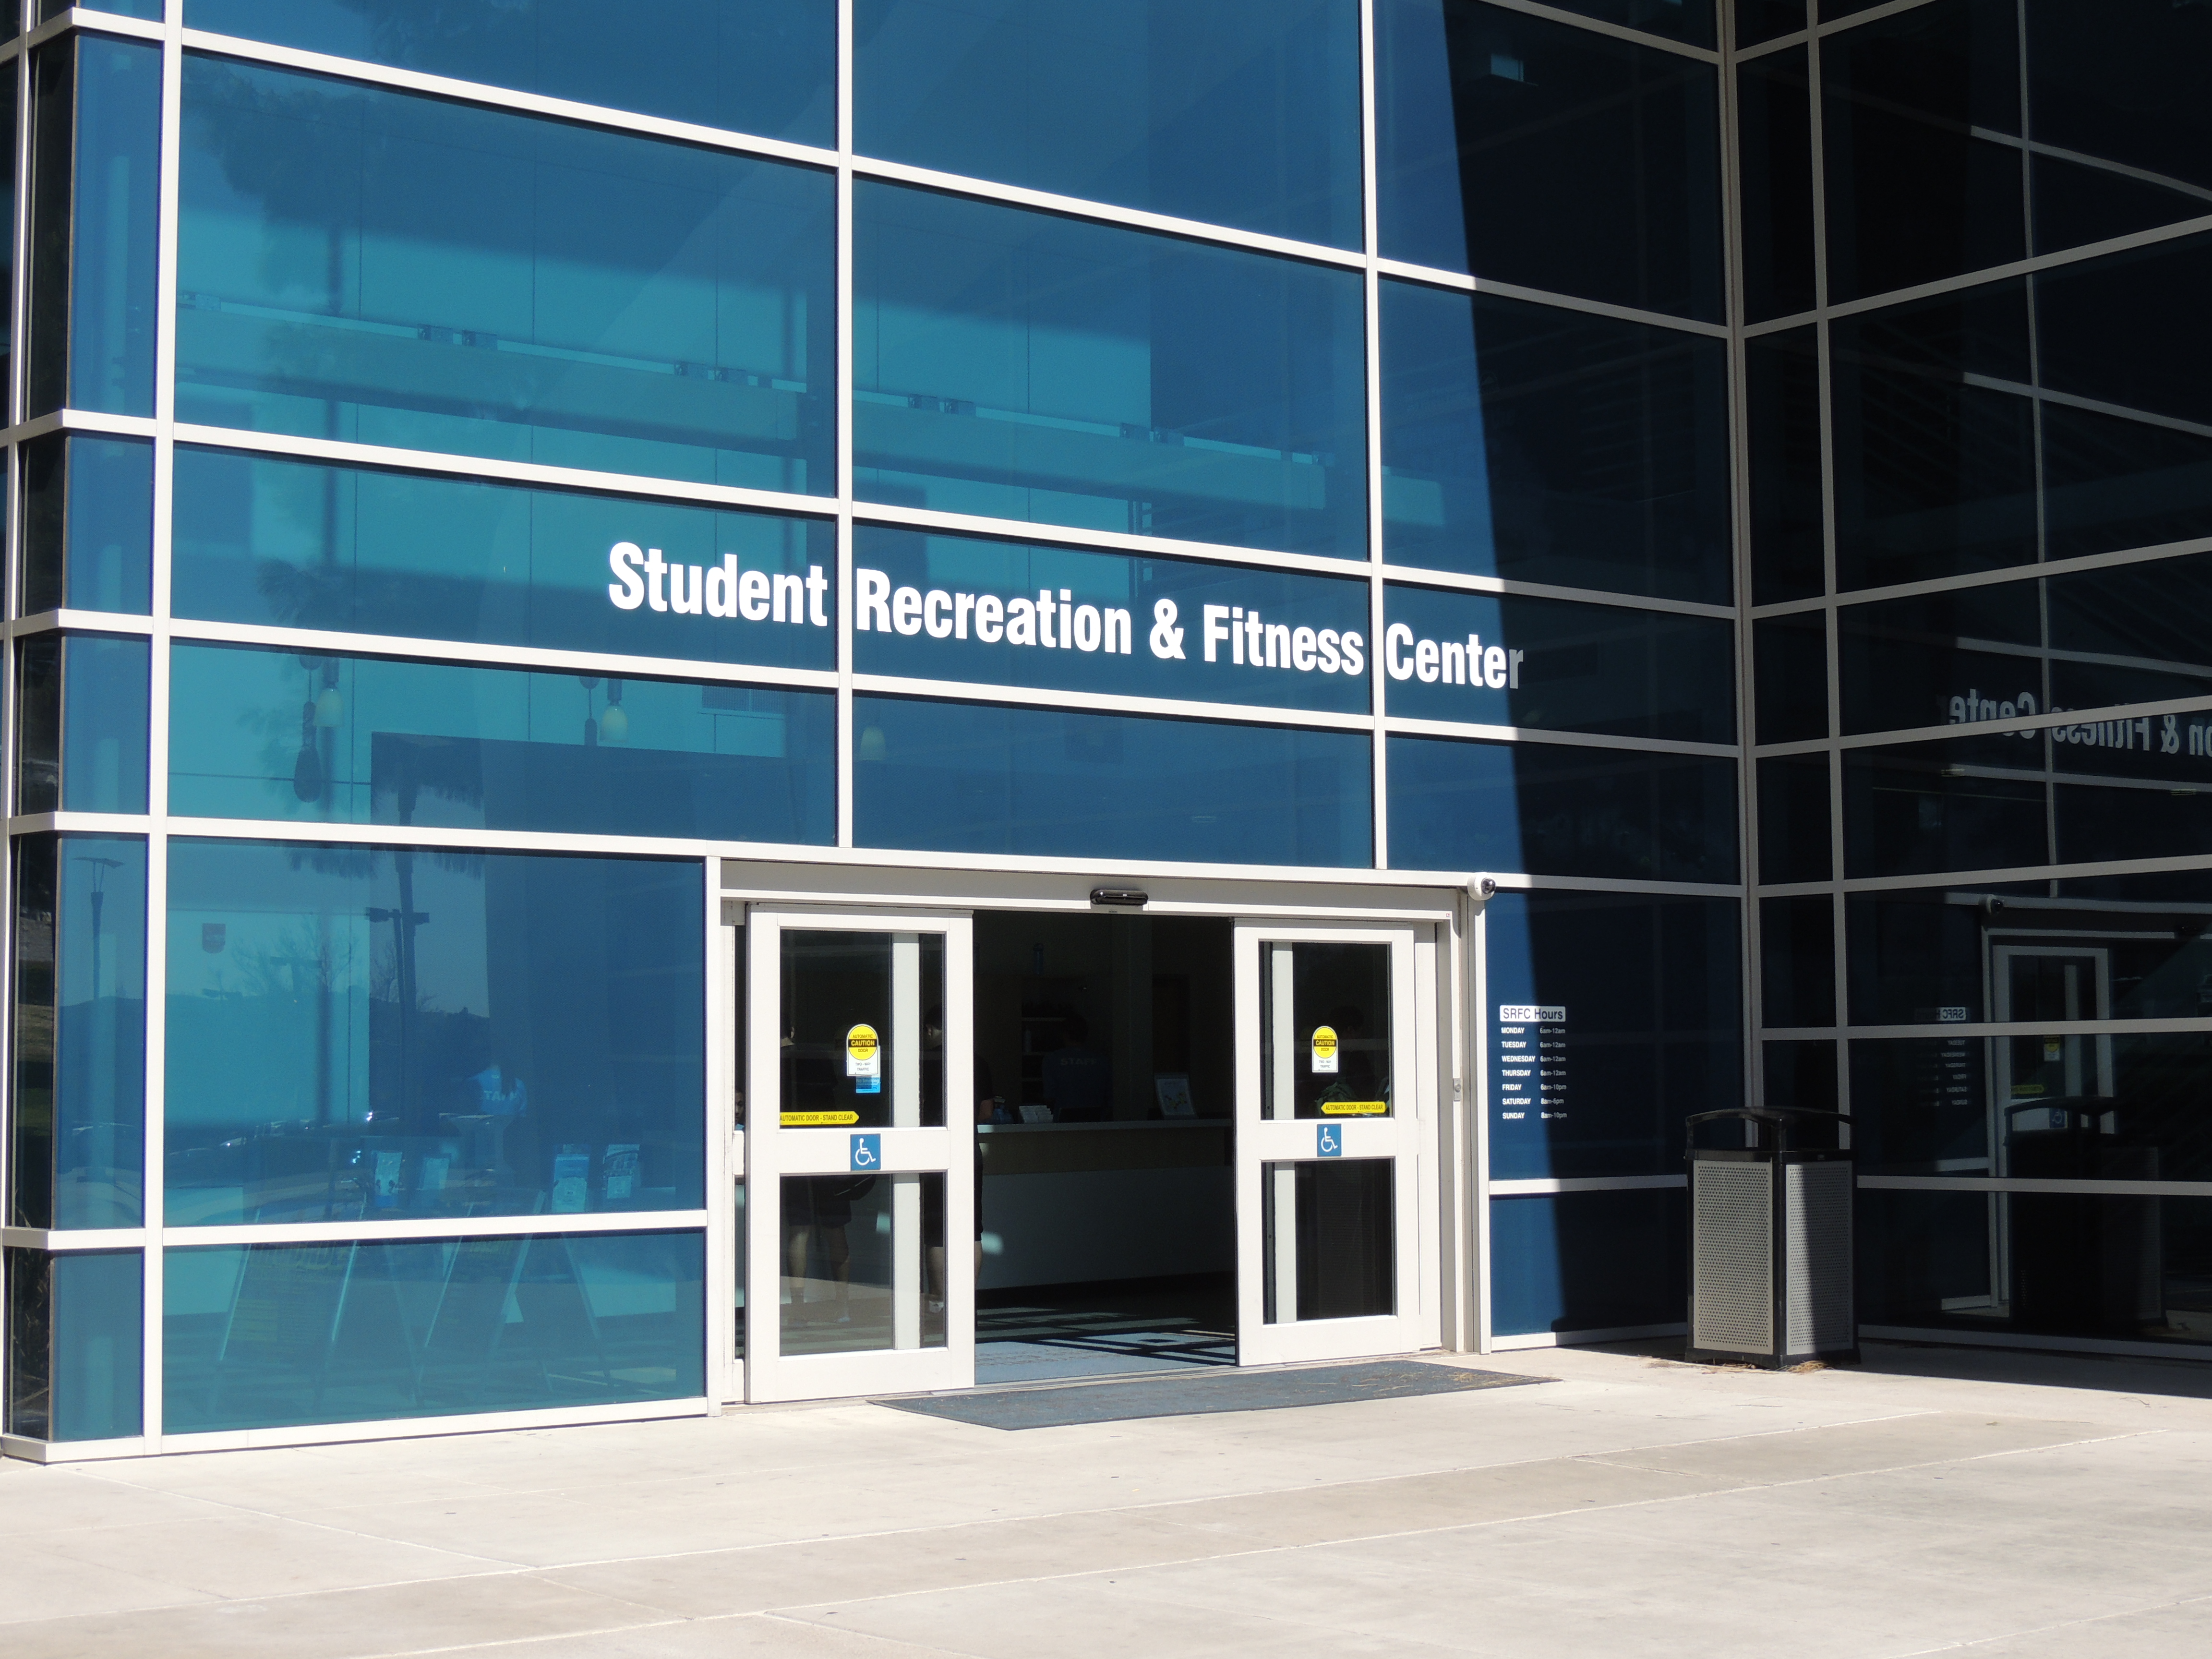 CSUSB Student Recreation and Fitness Center